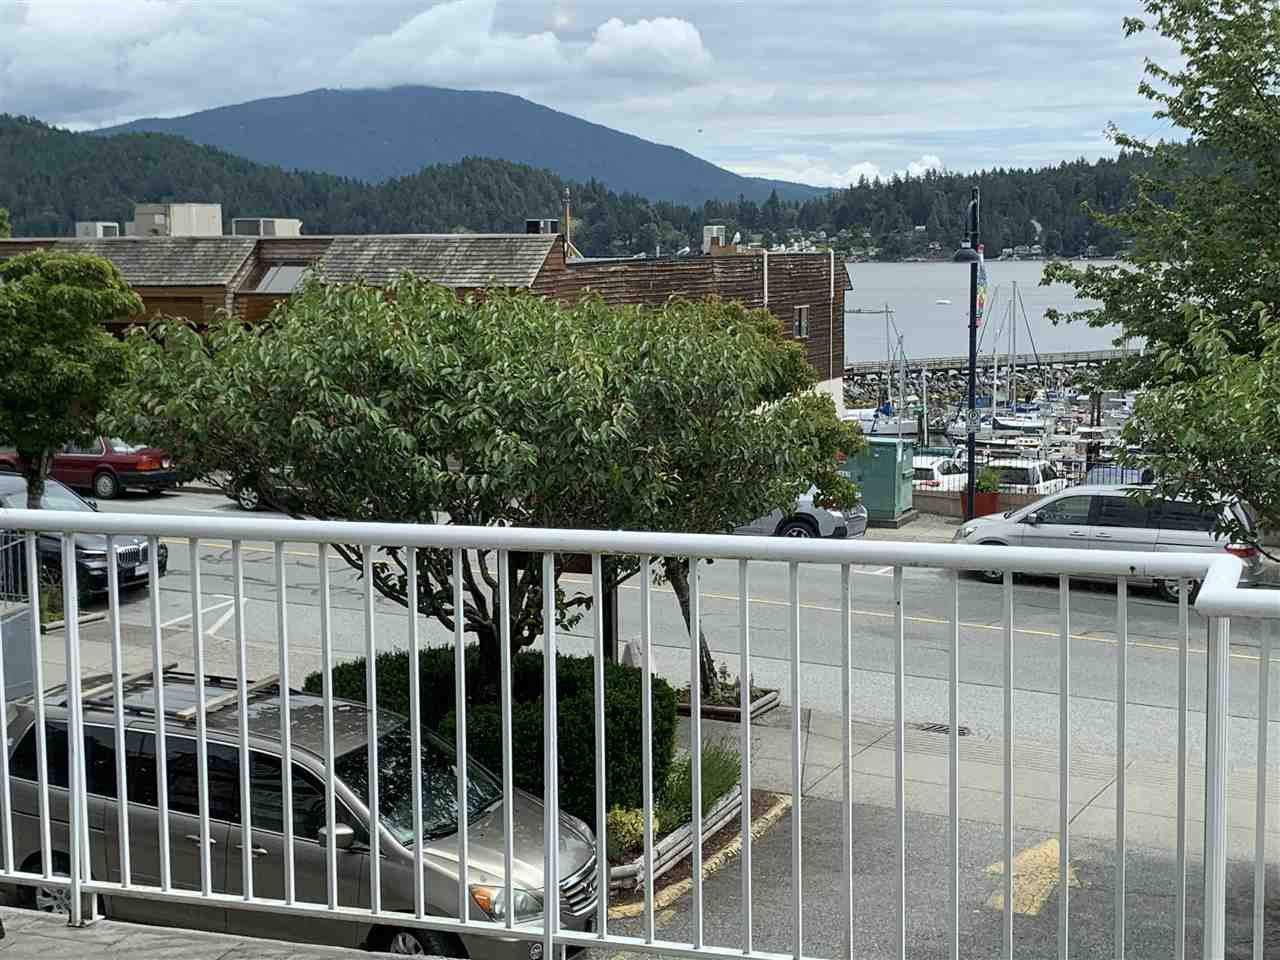 Main Photo: 14 292 GOWER POINT Road in Gibsons: Gibsons & Area Office for sale (Sunshine Coast)  : MLS®# C8032619